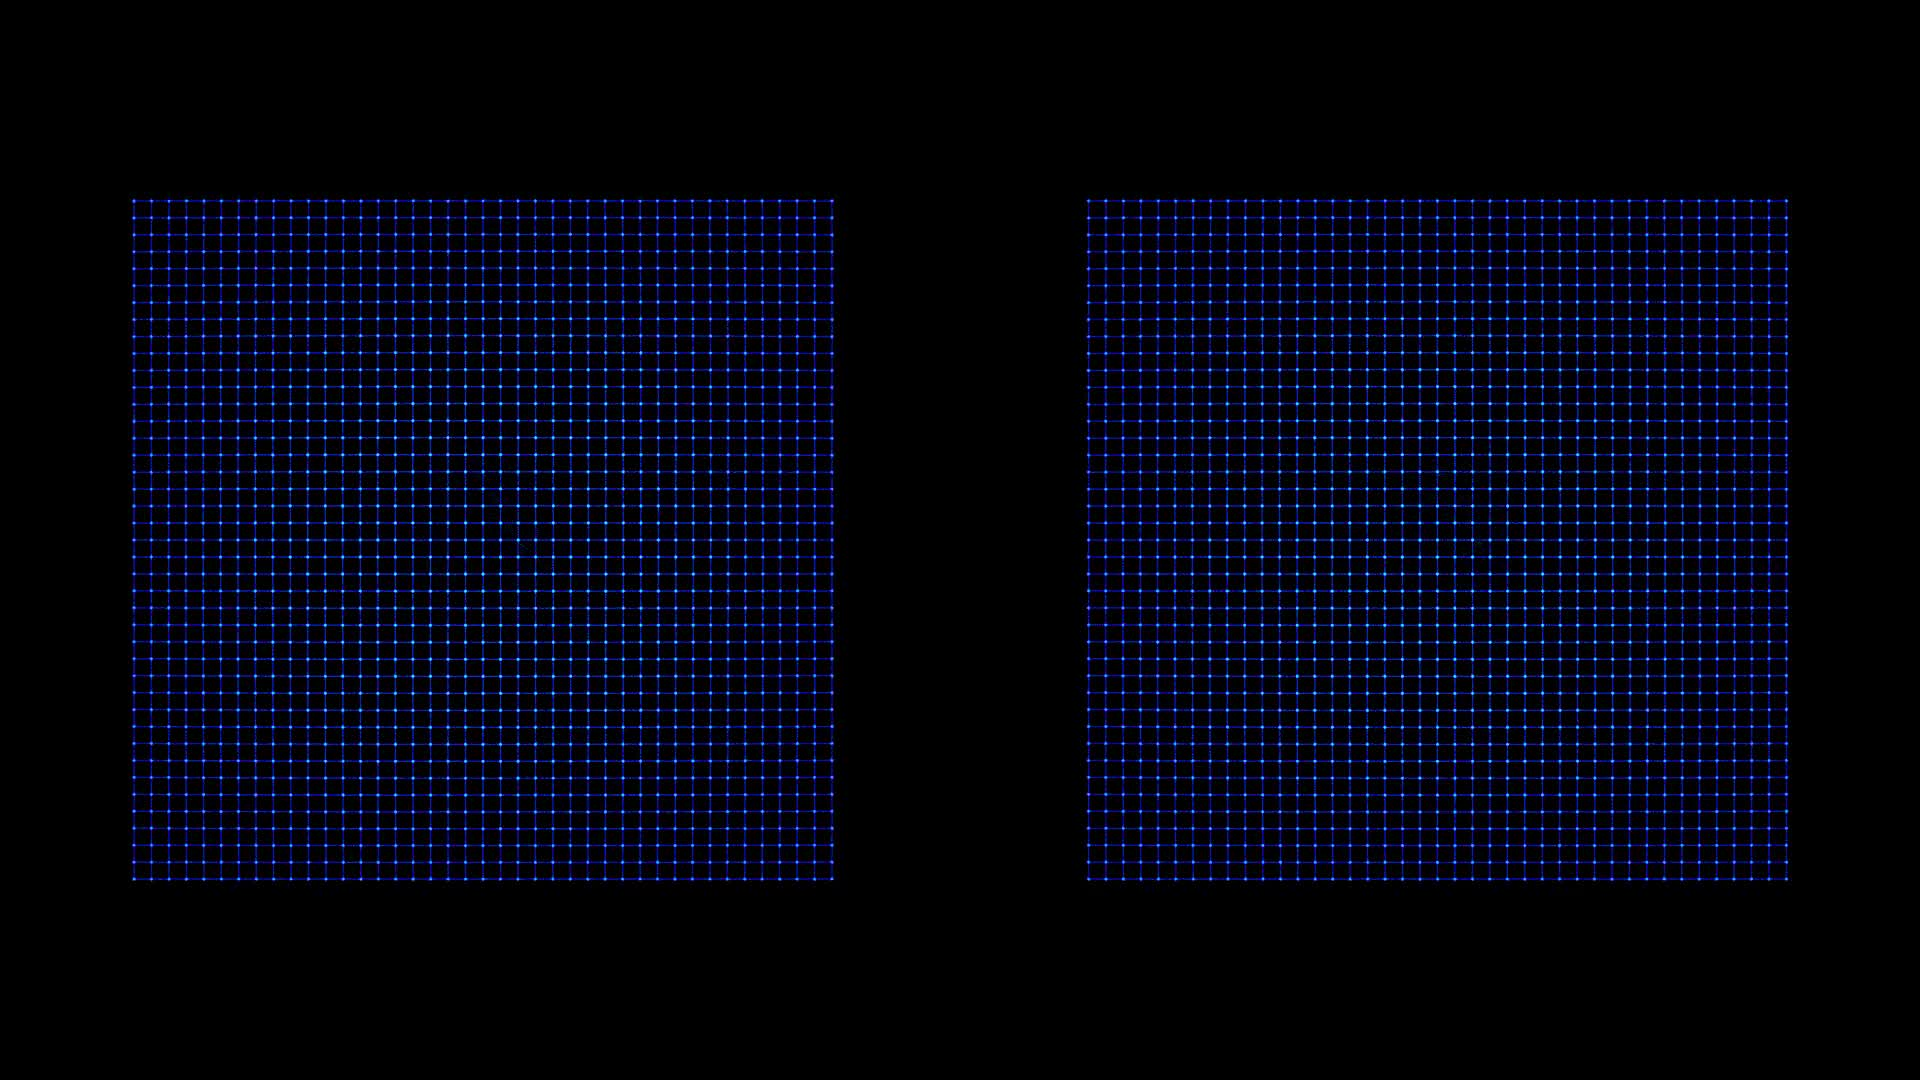 simulated, Neon cloth cross-eye GIFs